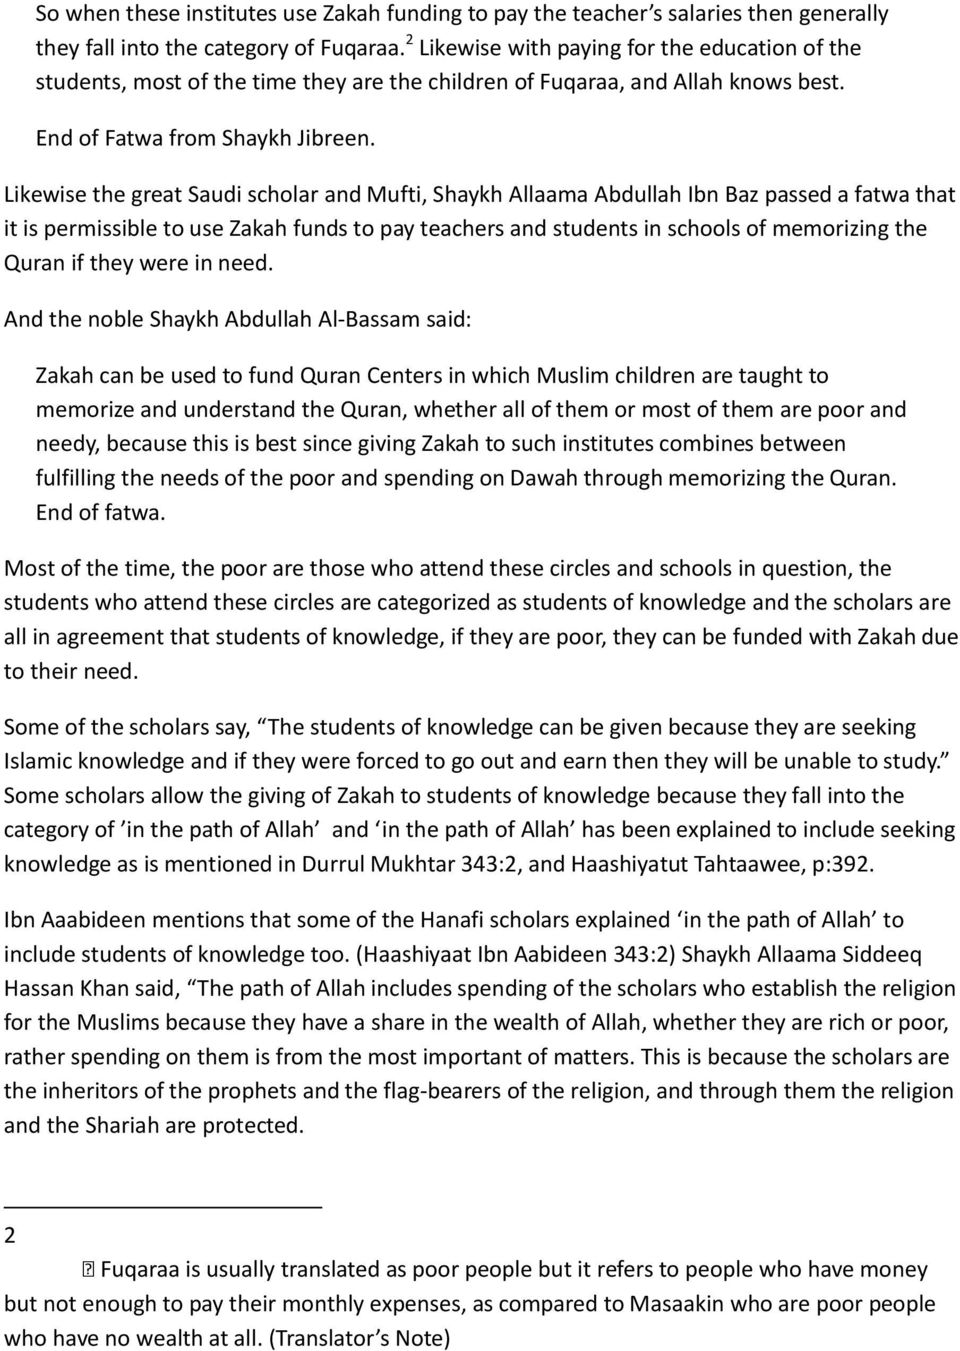 Likewise the great Saudi scholar and Mufti, Shaykh Allaama Abdullah Ibn Baz passed a fatwa that it is permissible to use Zakah funds to pay teachers and students in schools of memorizing the Quran if